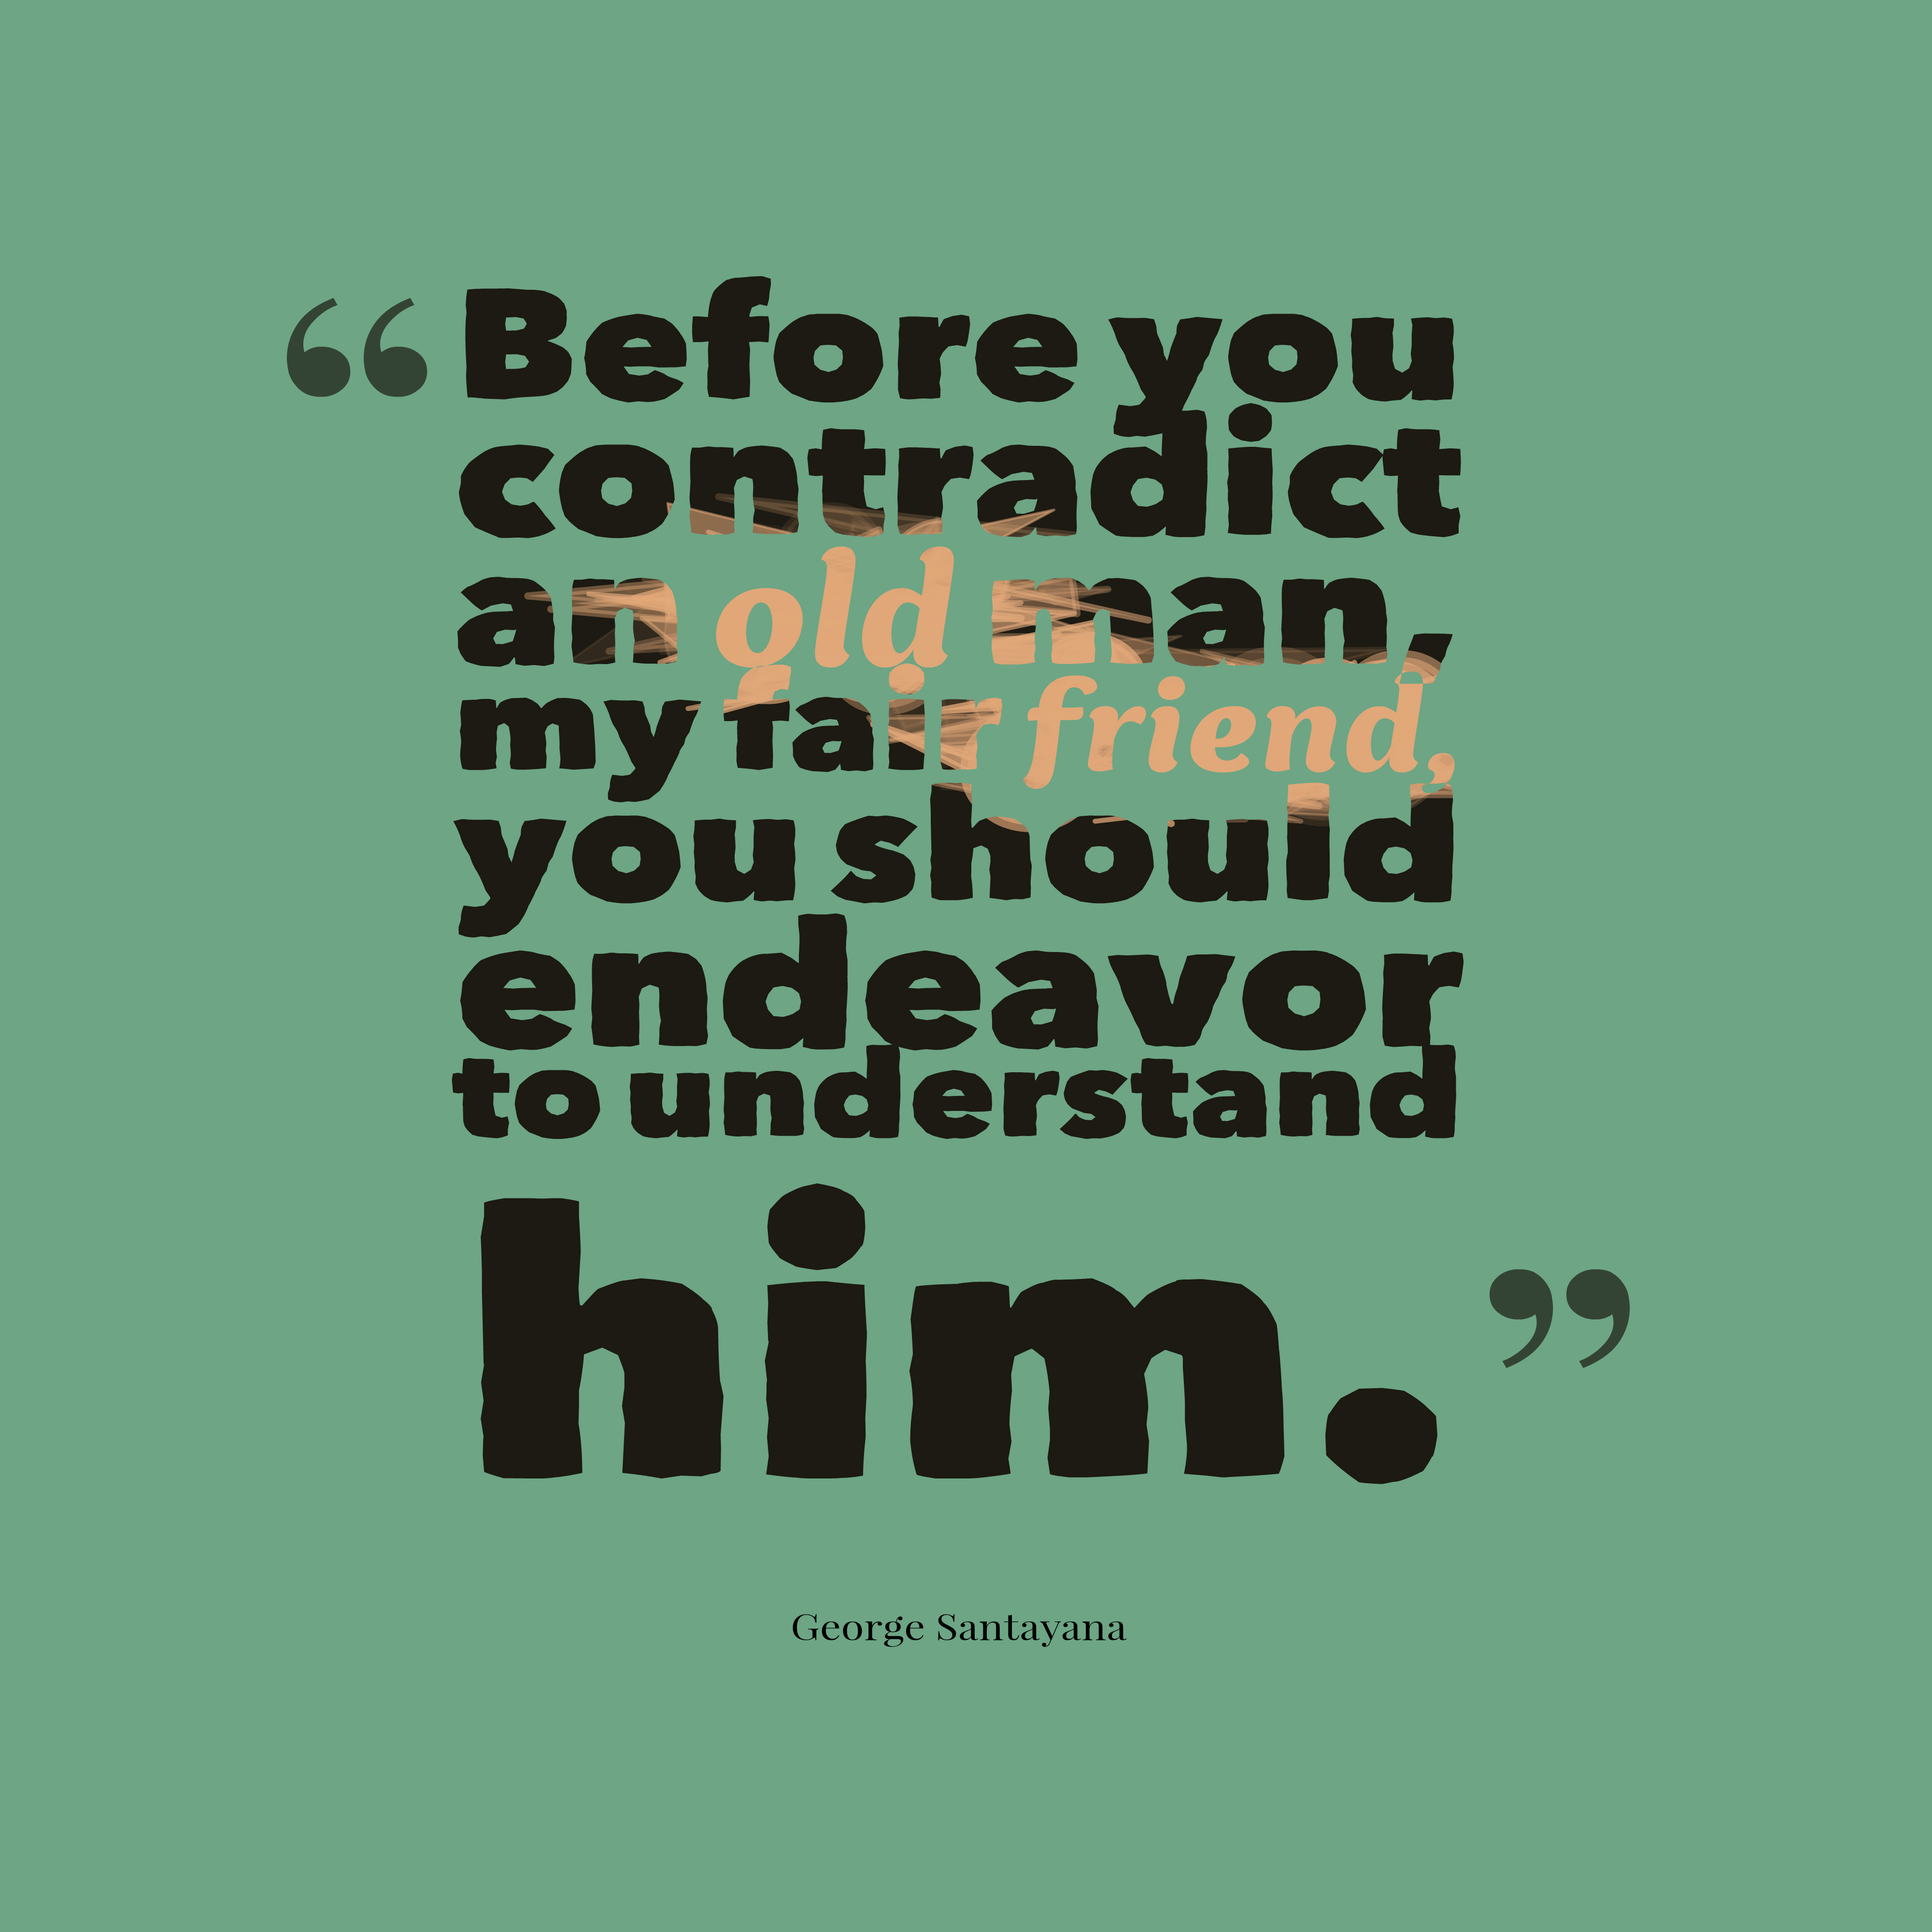 Quotes image of Before you contradict an old man, my fair friend, you should endeavor to understand him.